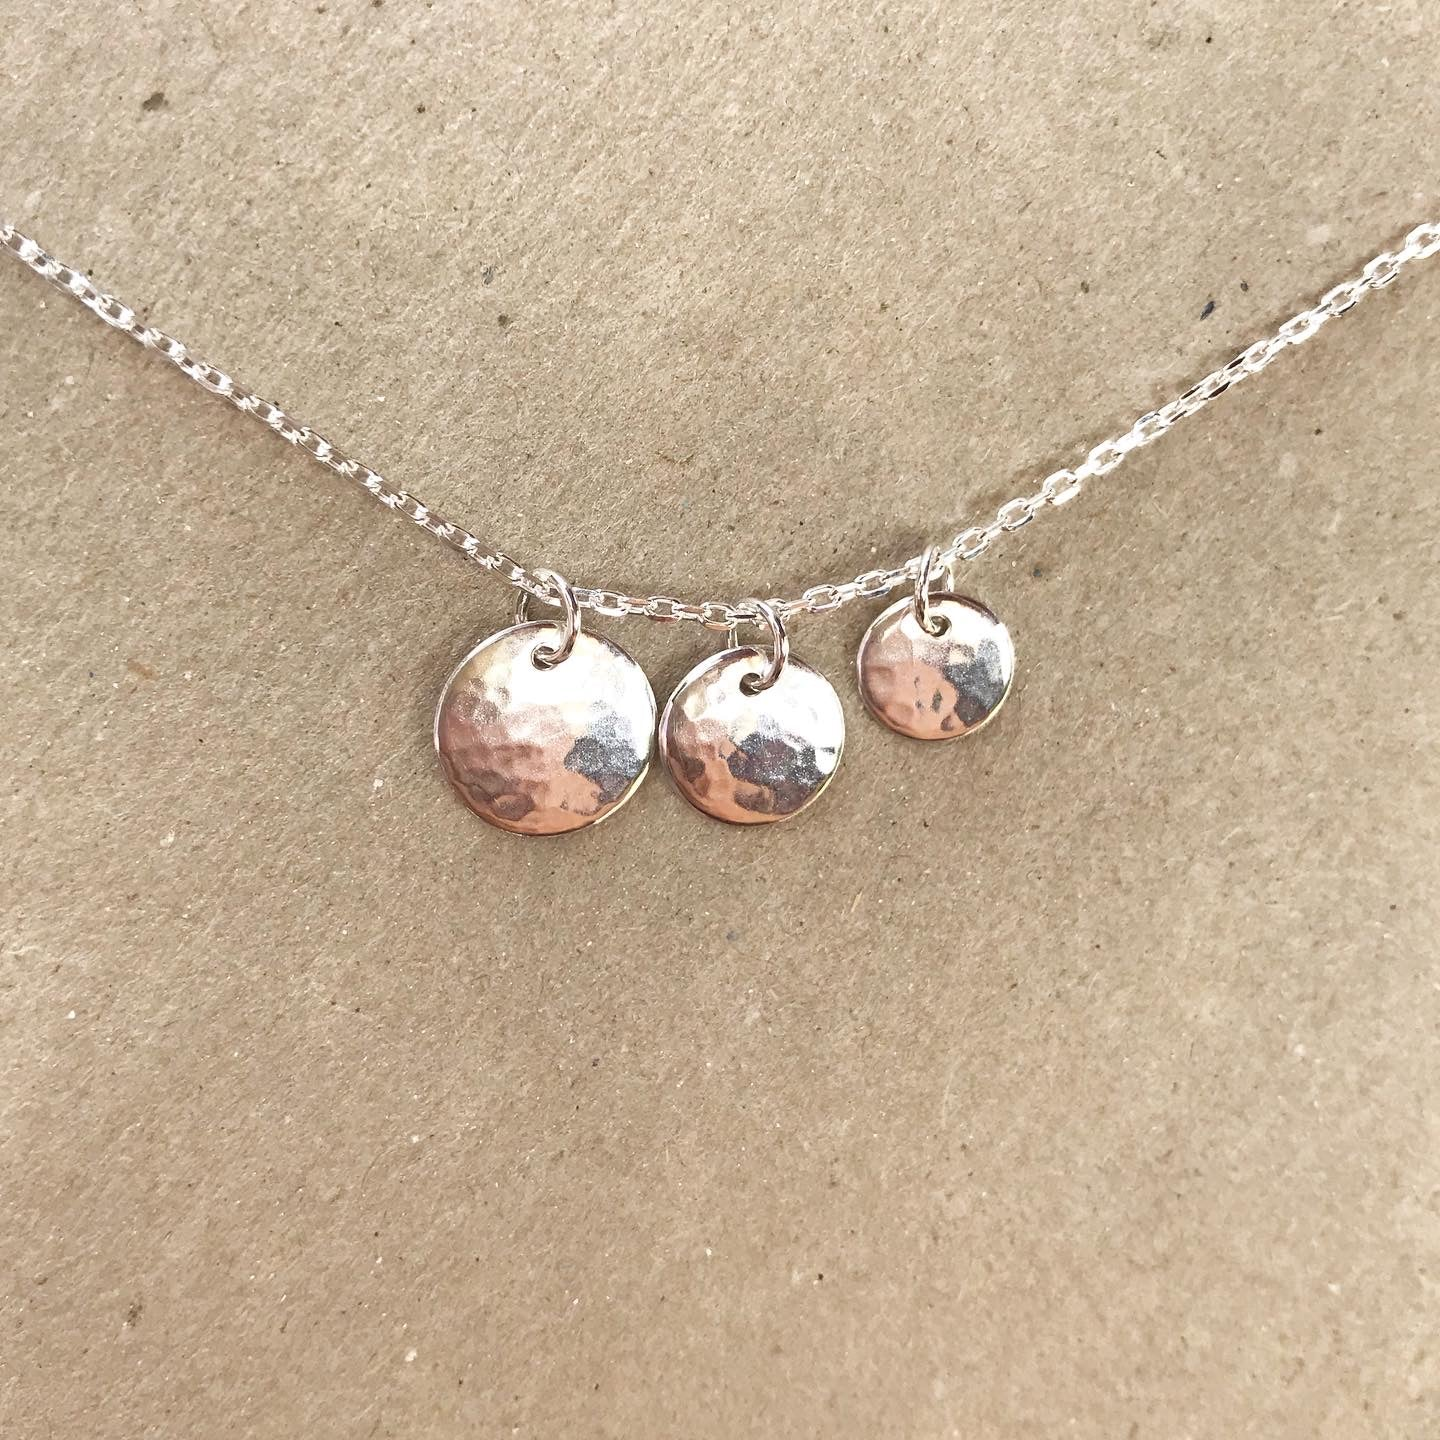 HAMMERED CHARM NECKLACE- RECYCLED SILVER